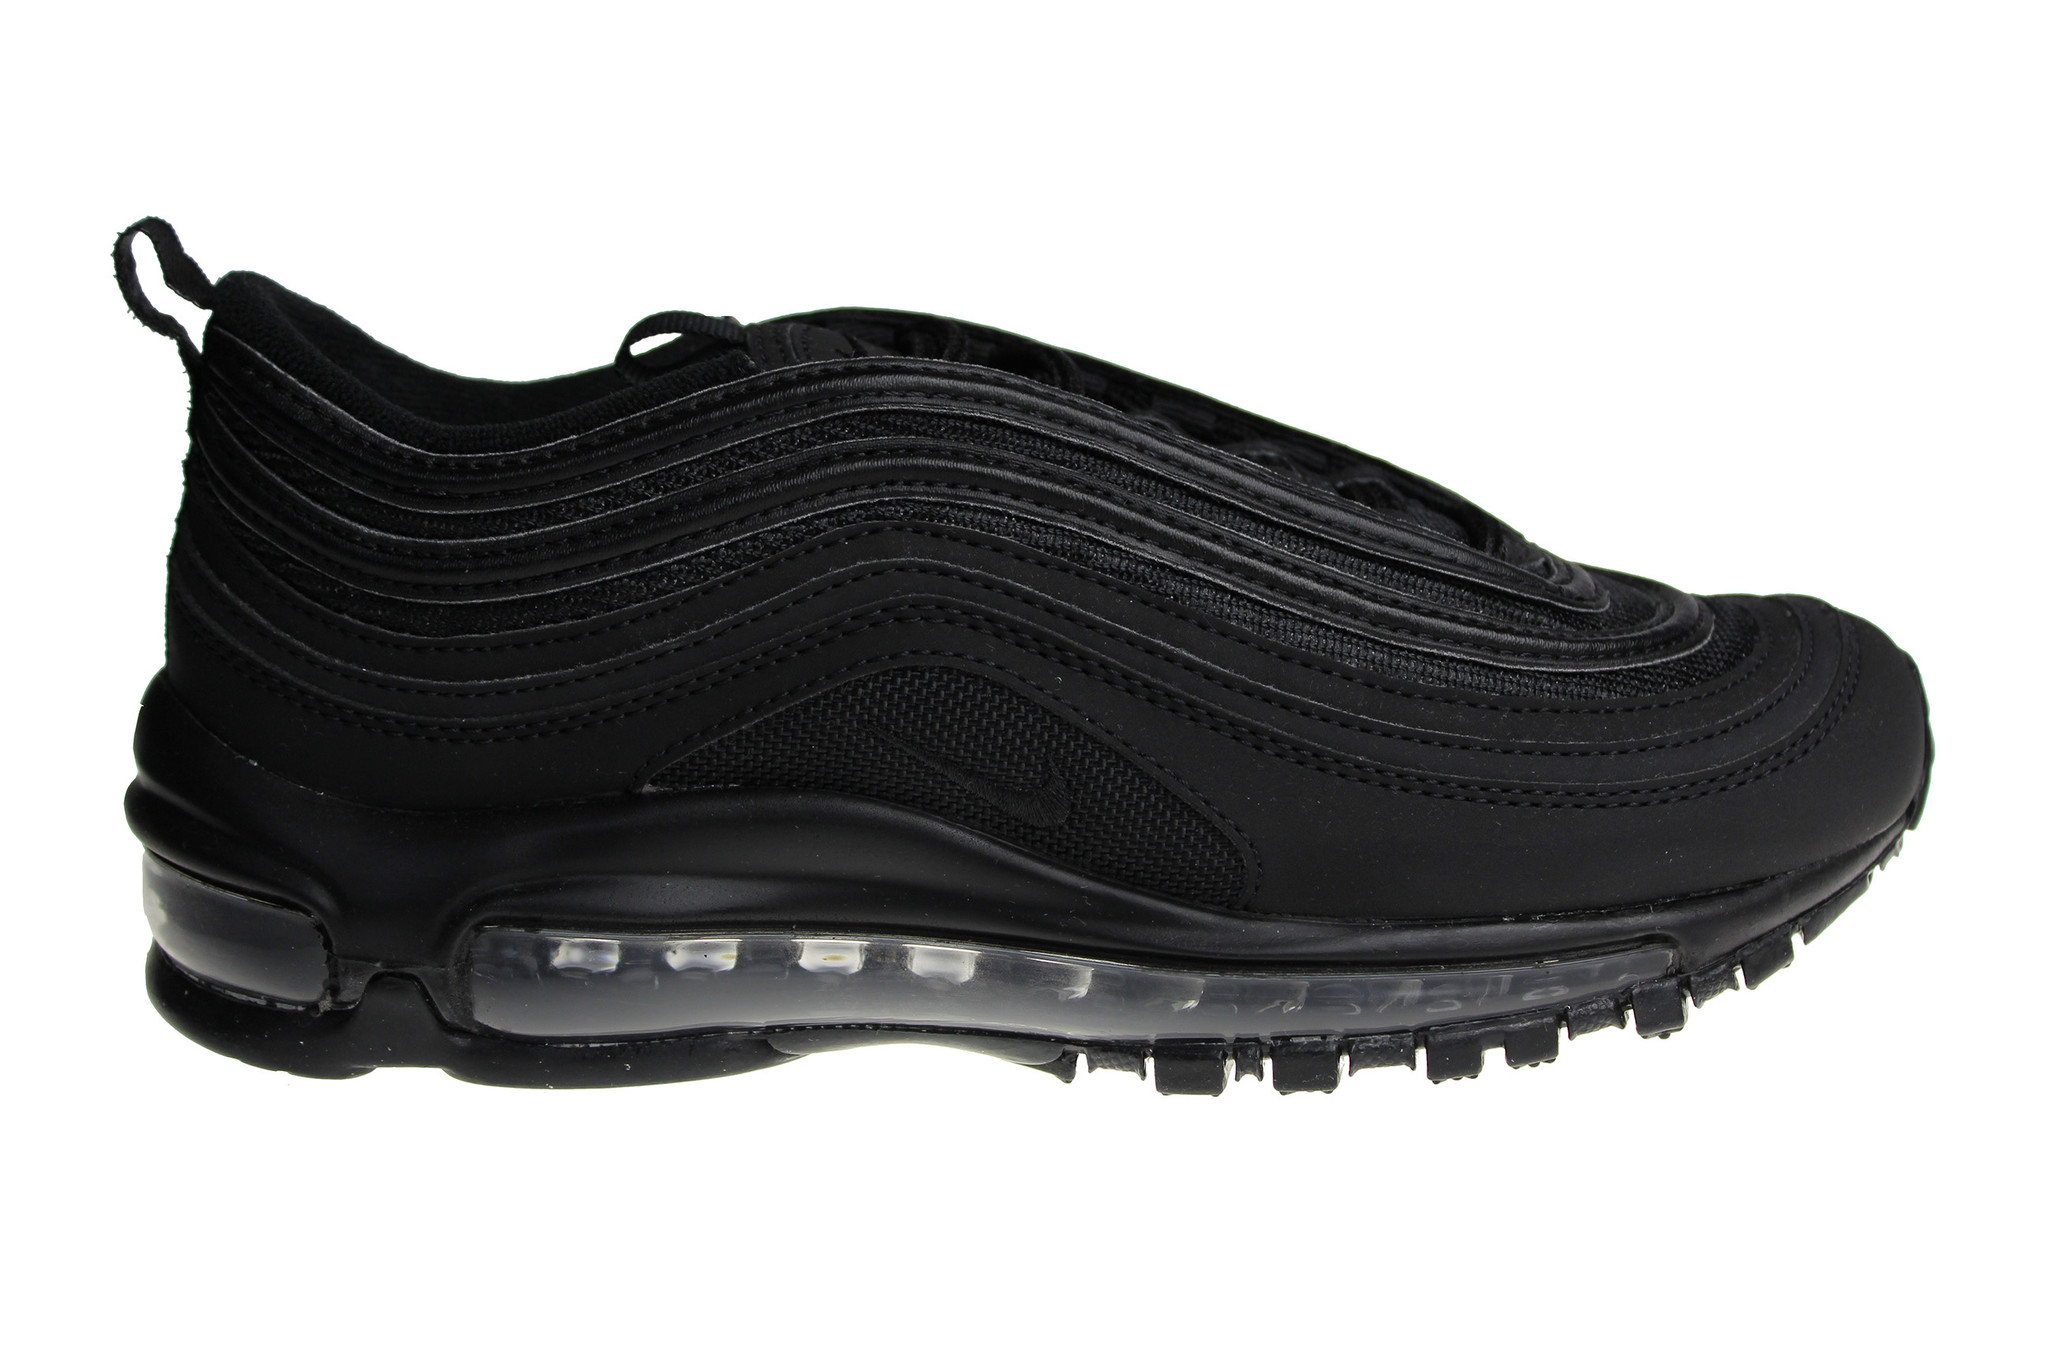 factory outlets affordable price available Nike Air Max 97 OG BG AV4149 001